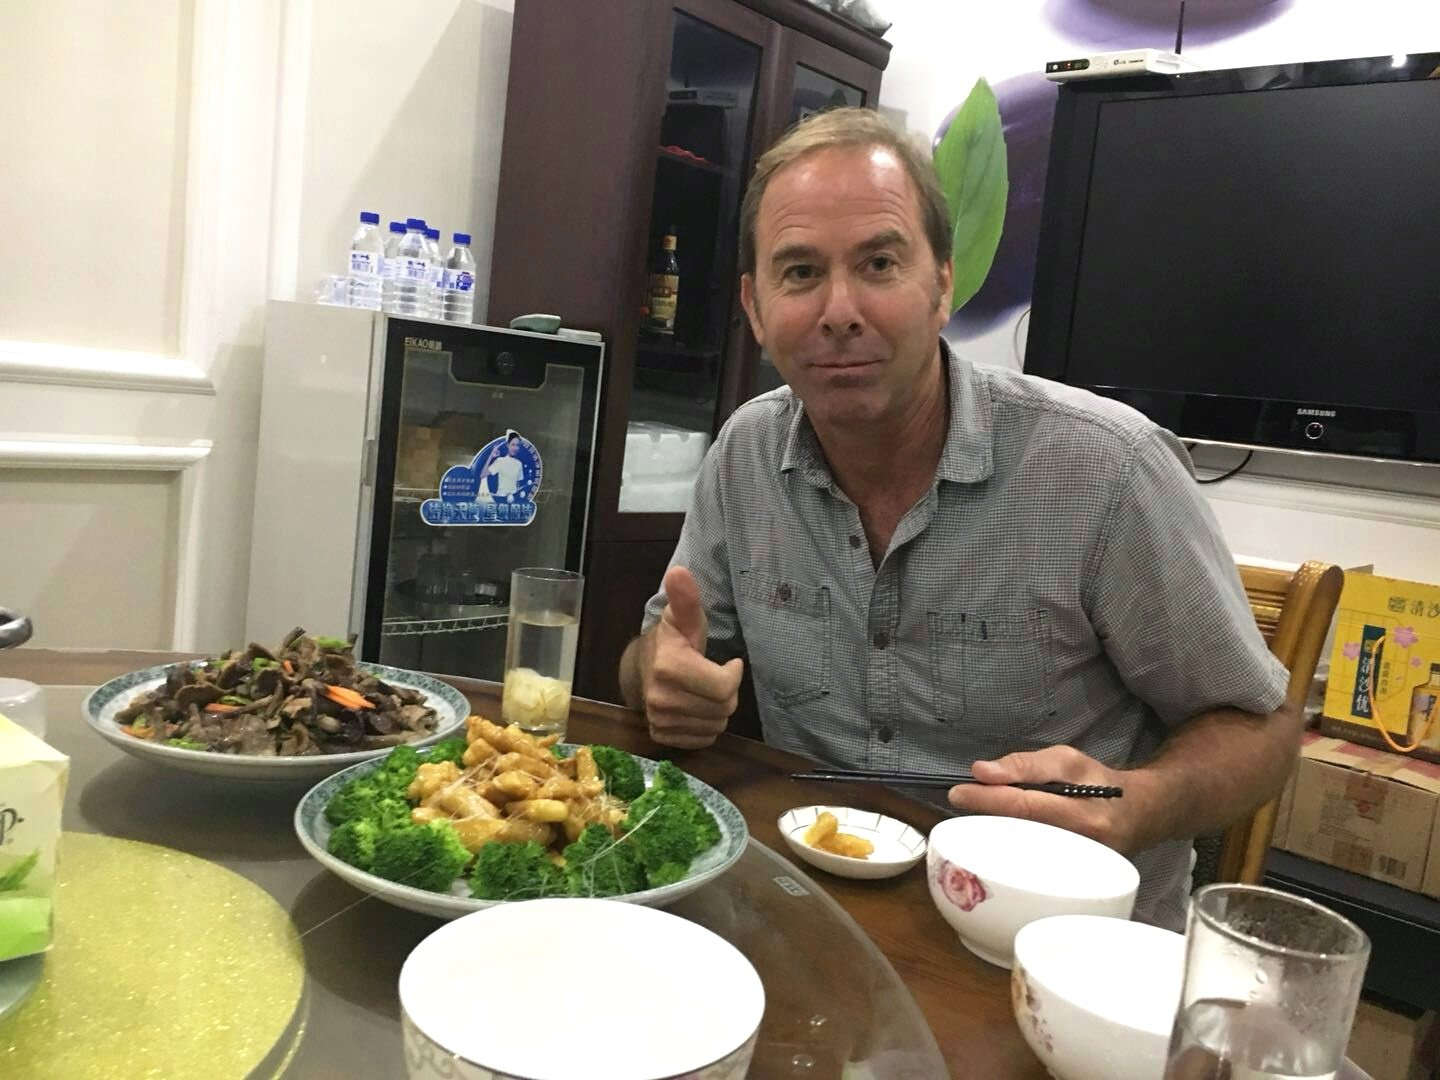 David enjoying multi-course traditional Chinese meal in Chinese processing facility office.